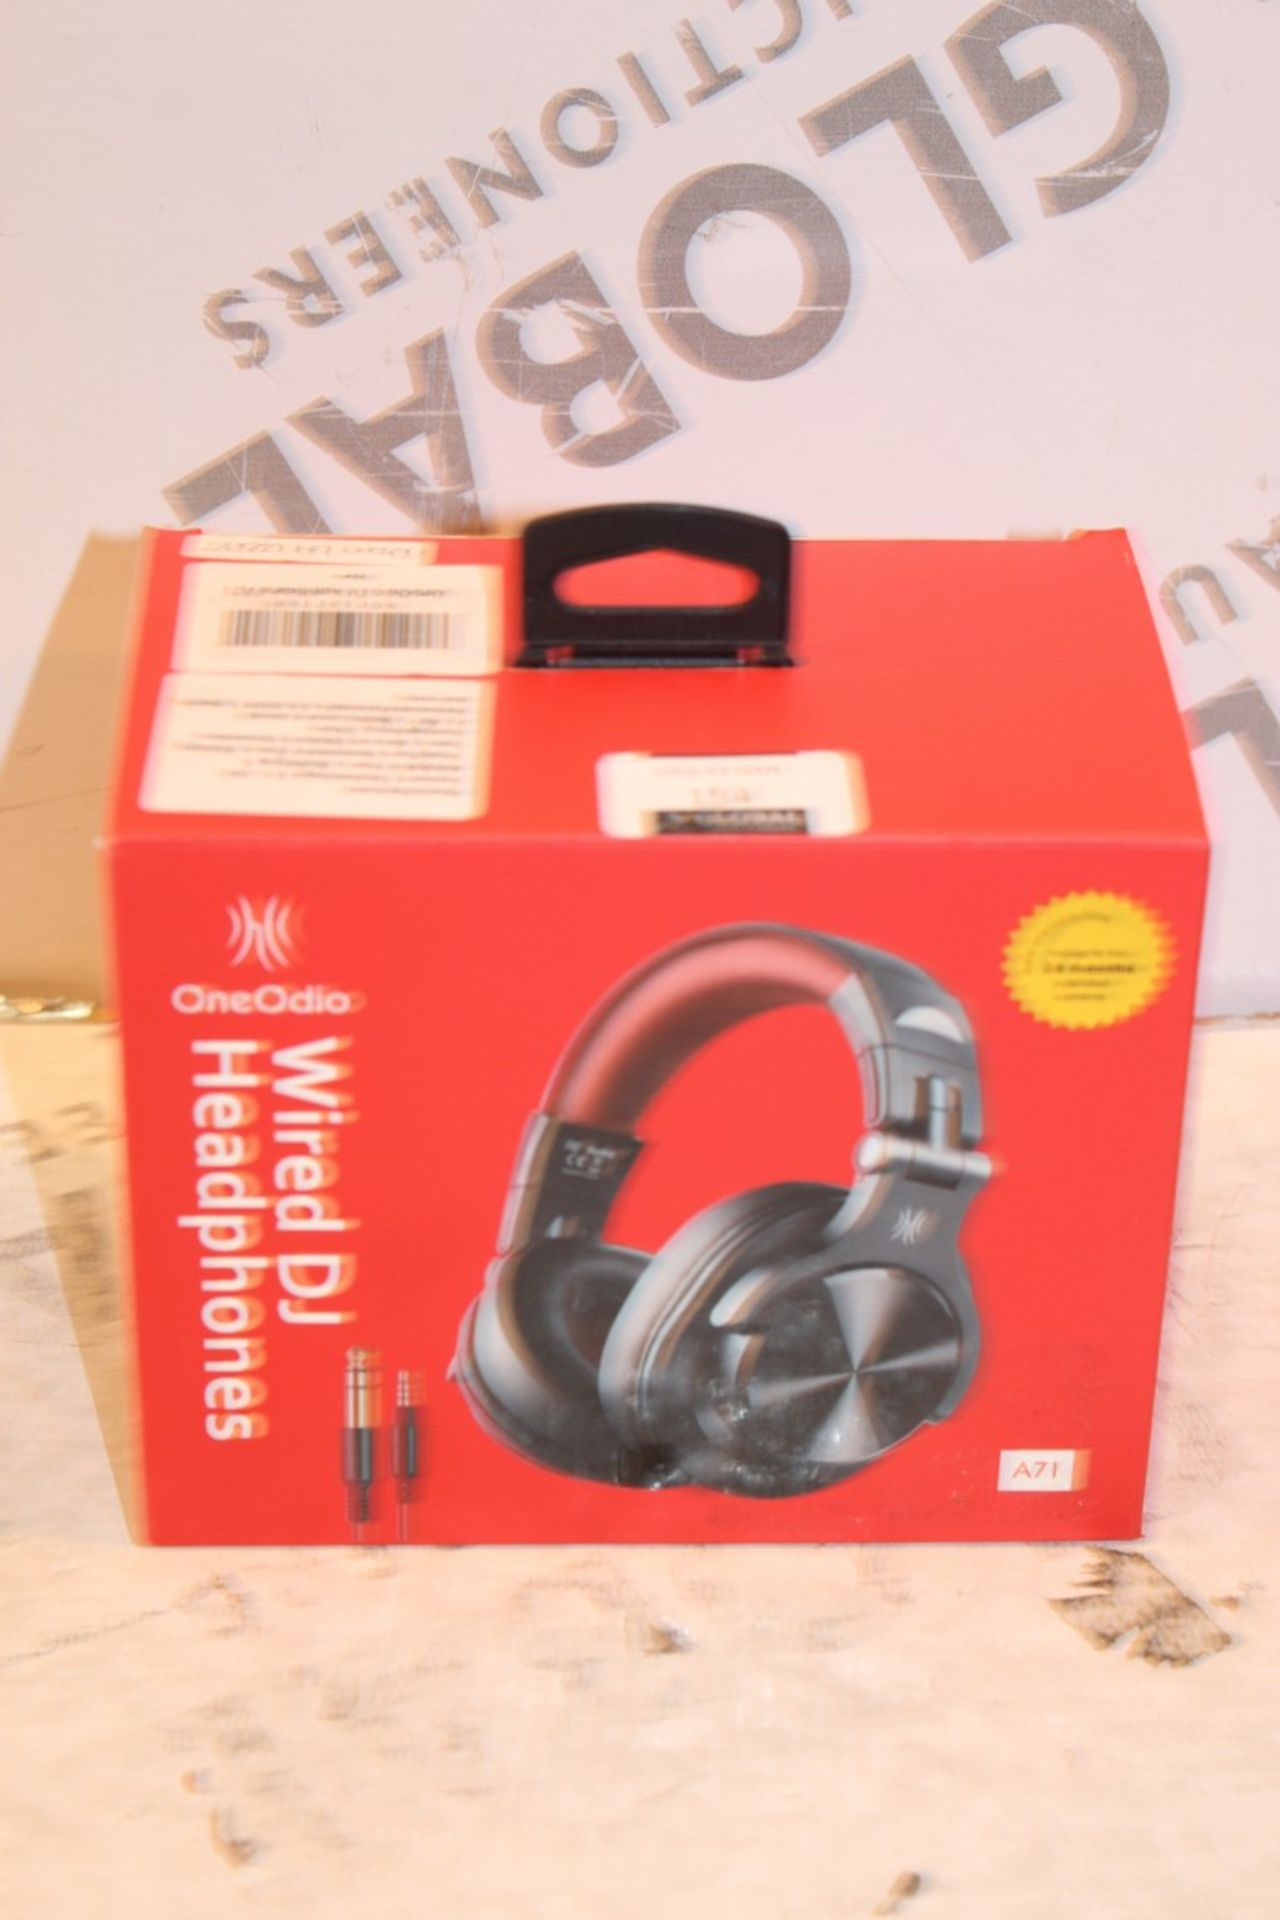 Lot 154 - Boxed One Audio Wireless DJ Headphones RRP £50 (Pictures Are For Illustration Purposes Only)(